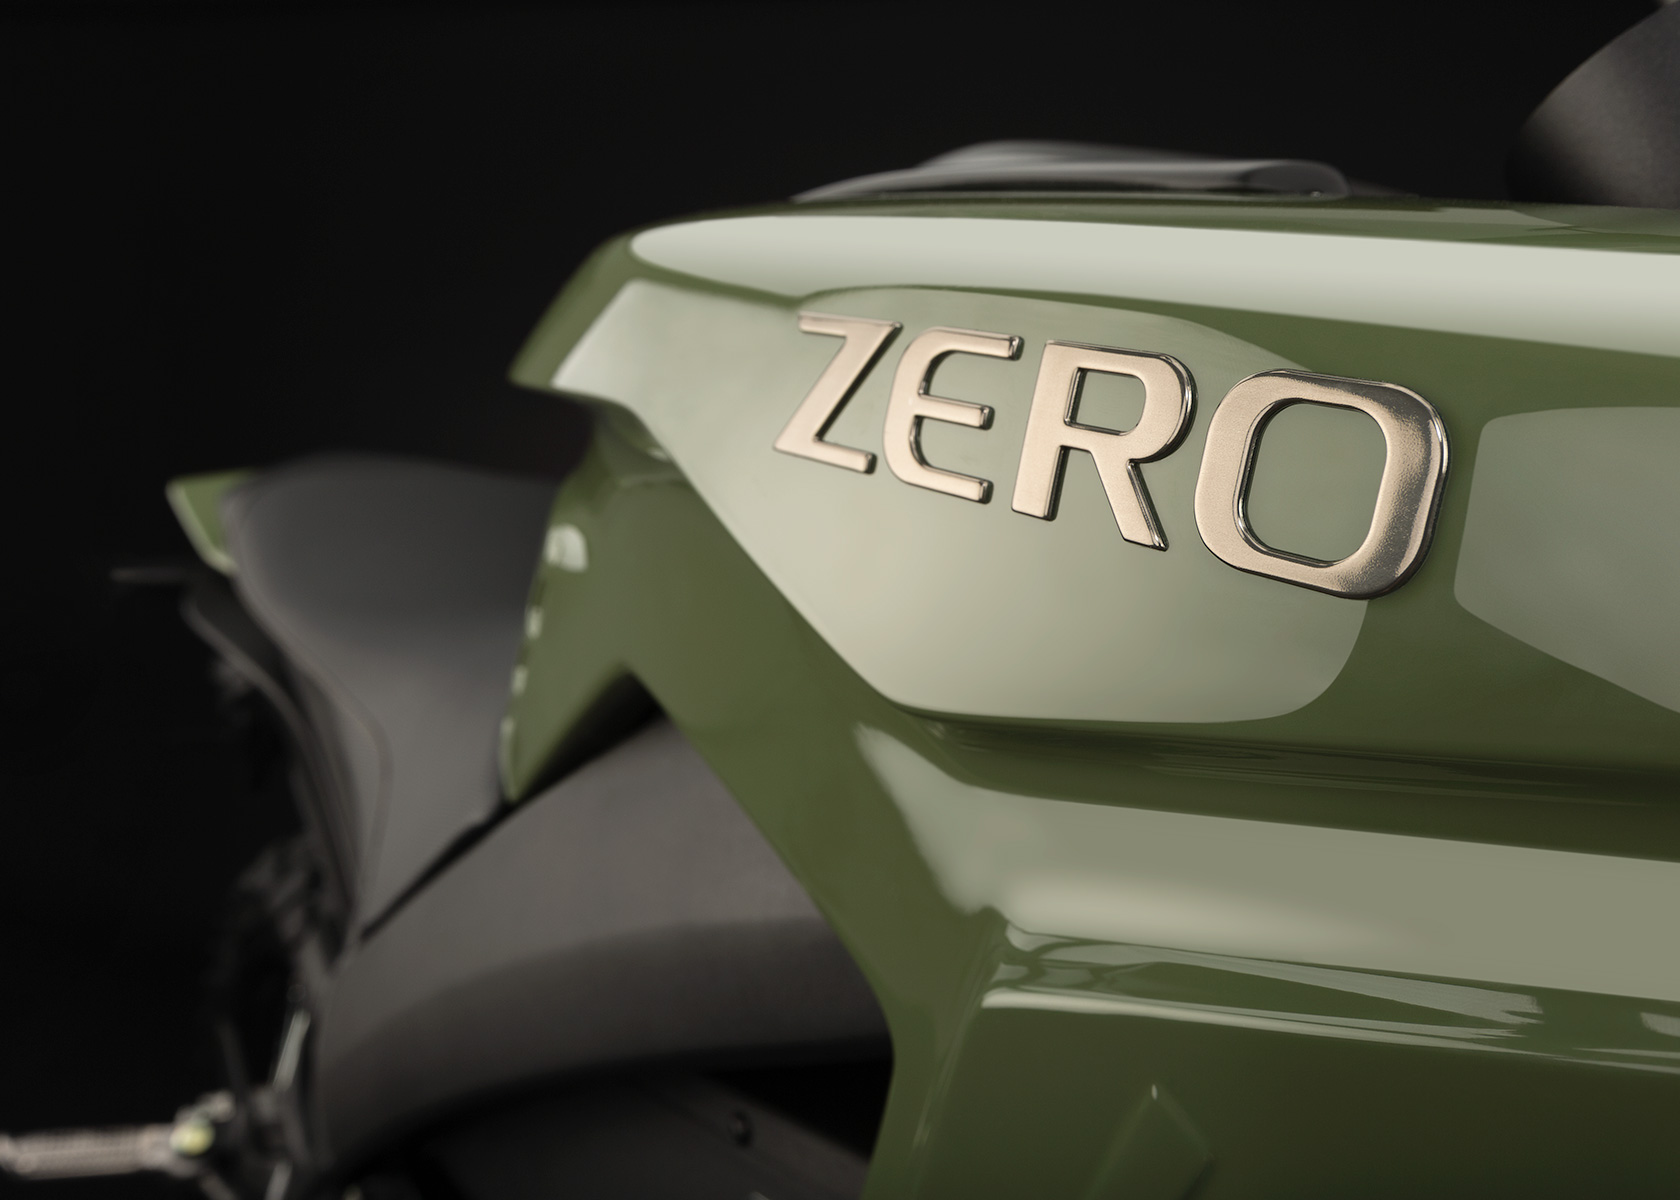 2013 Zero DS Electric Motorcycle: Tank